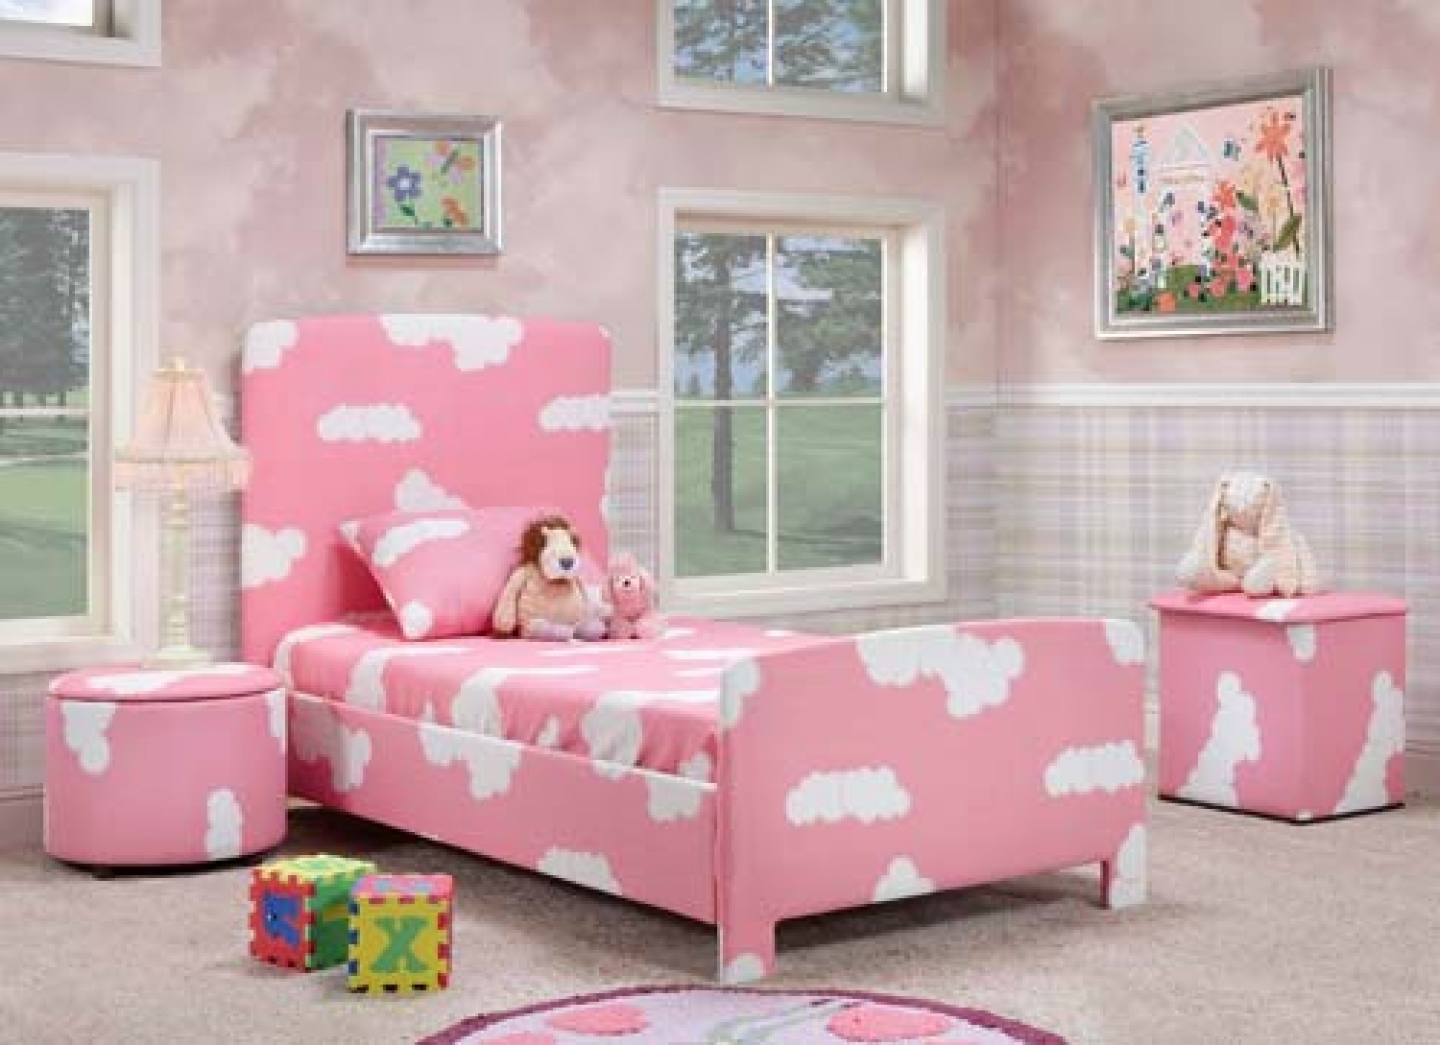 Bedrooms for girls decoration in low budget custom home for Bedroom designs low budget